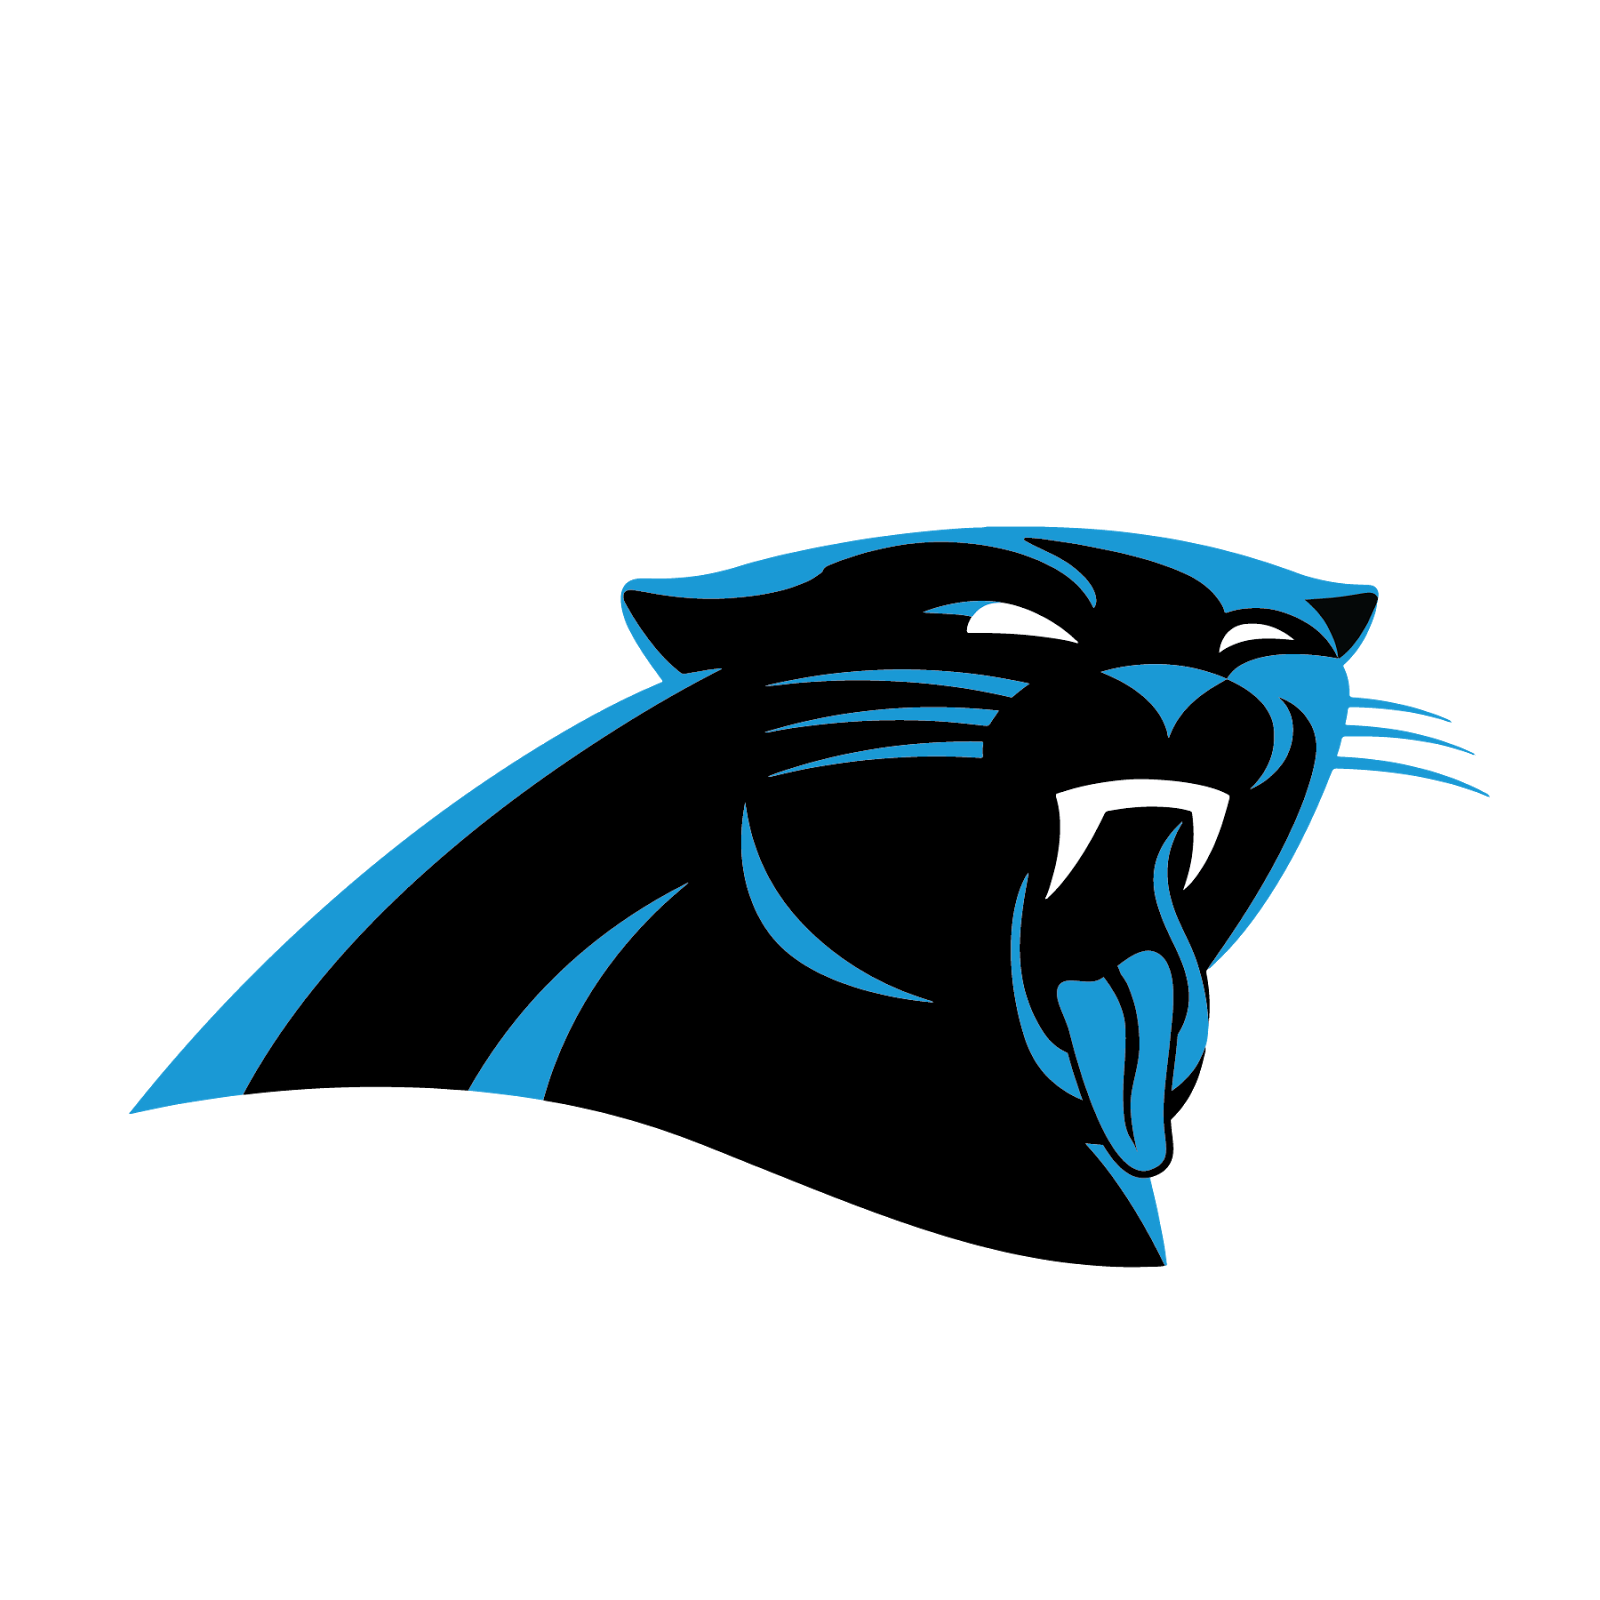 Carolina Panthers, metal, logo, re-imagined